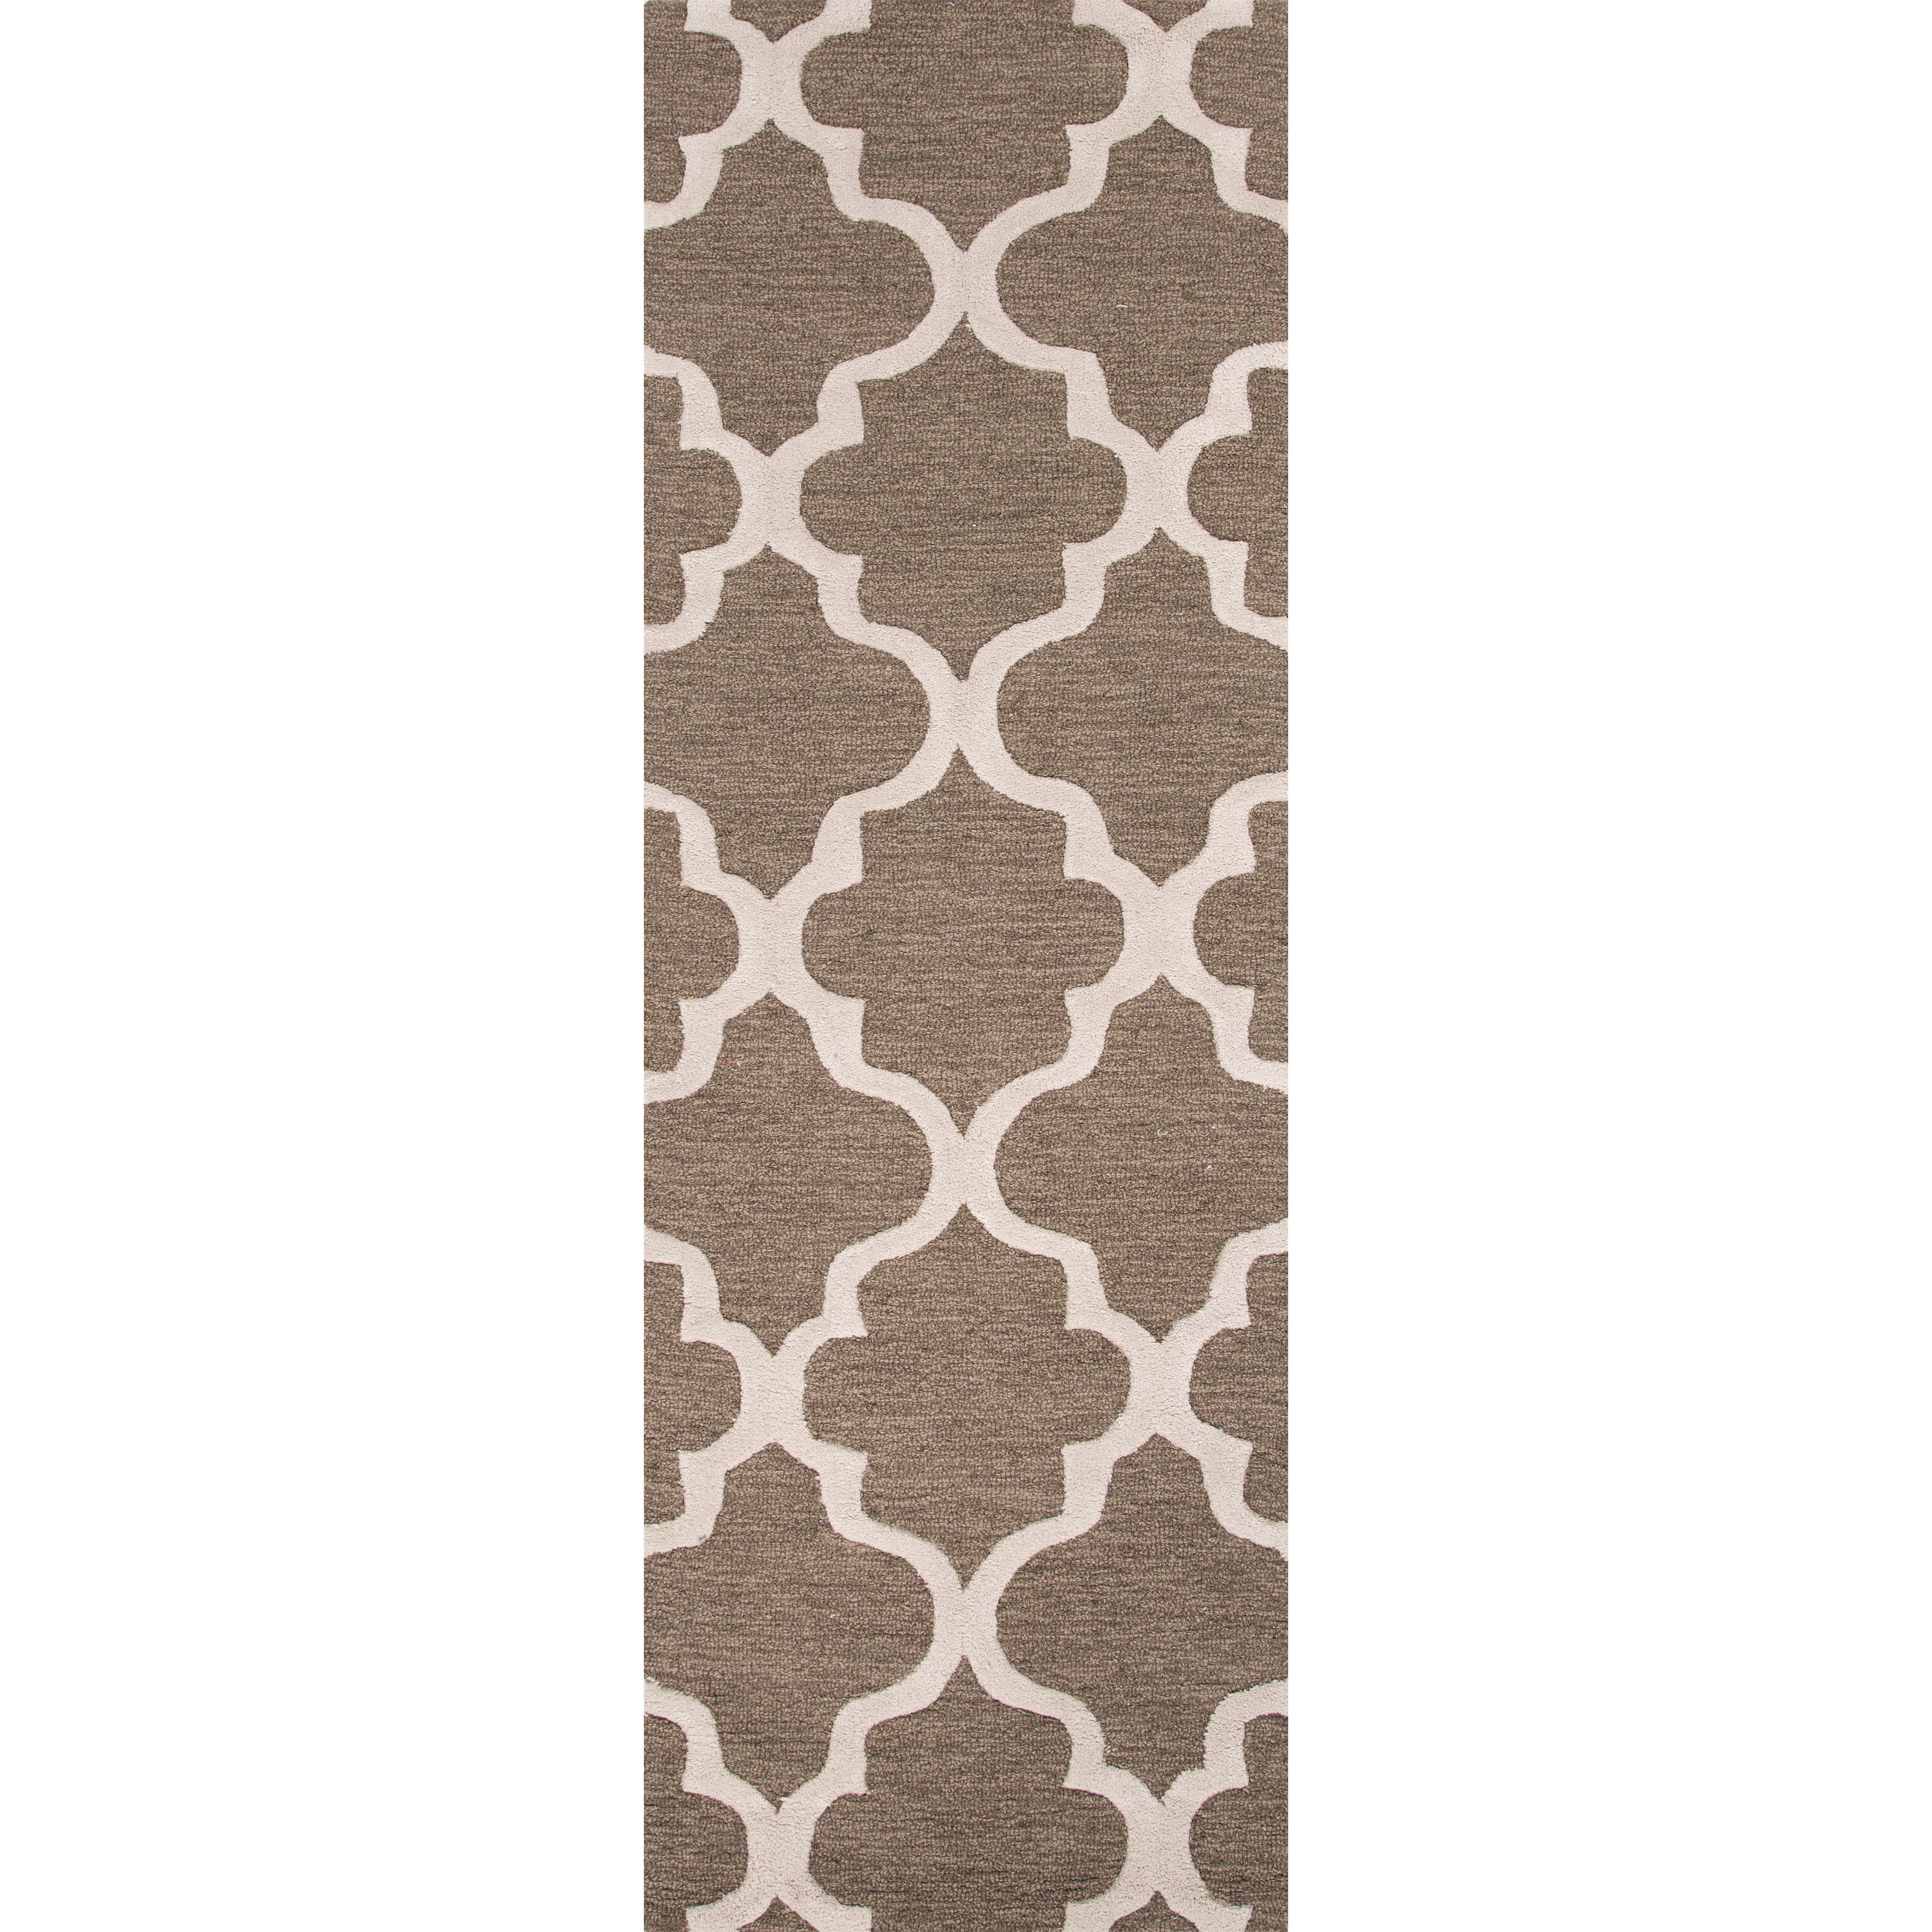 JAIPUR Rugs City 2.6 x 8 Rug - Item Number: RUG108216